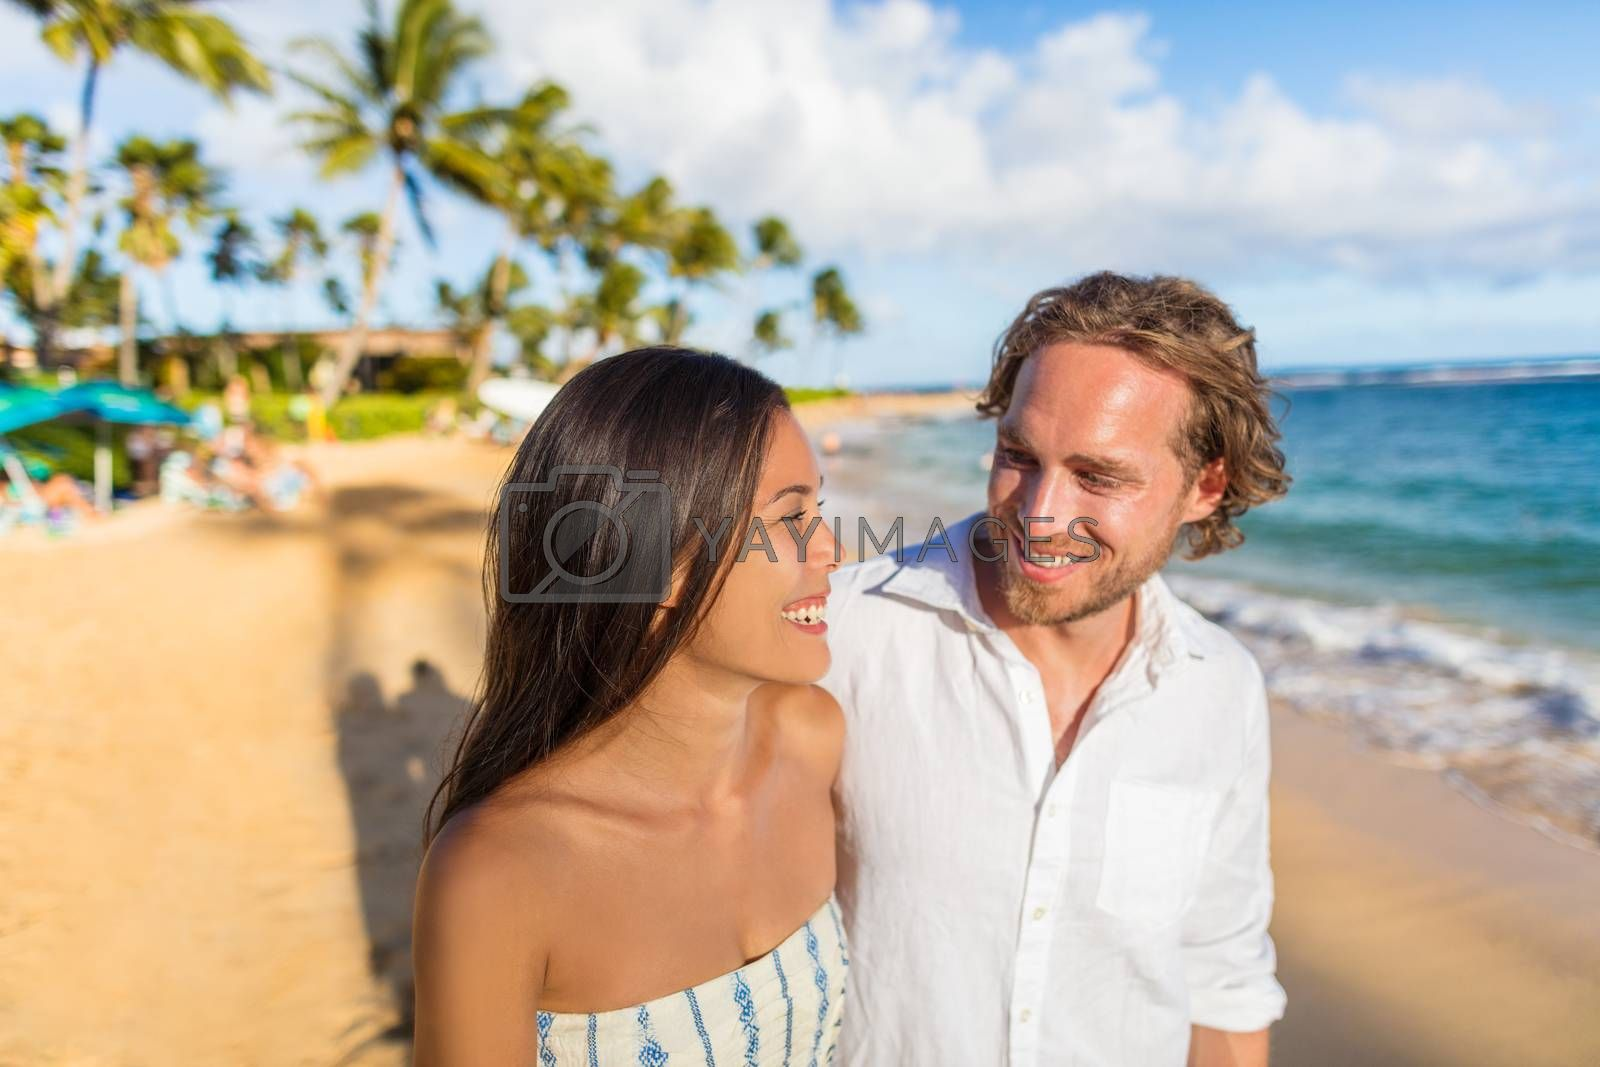 Hawaii travel beach couple laughing together happy on honeymoon vacation. People enjoying hawaiian sunset holidays by Maridav